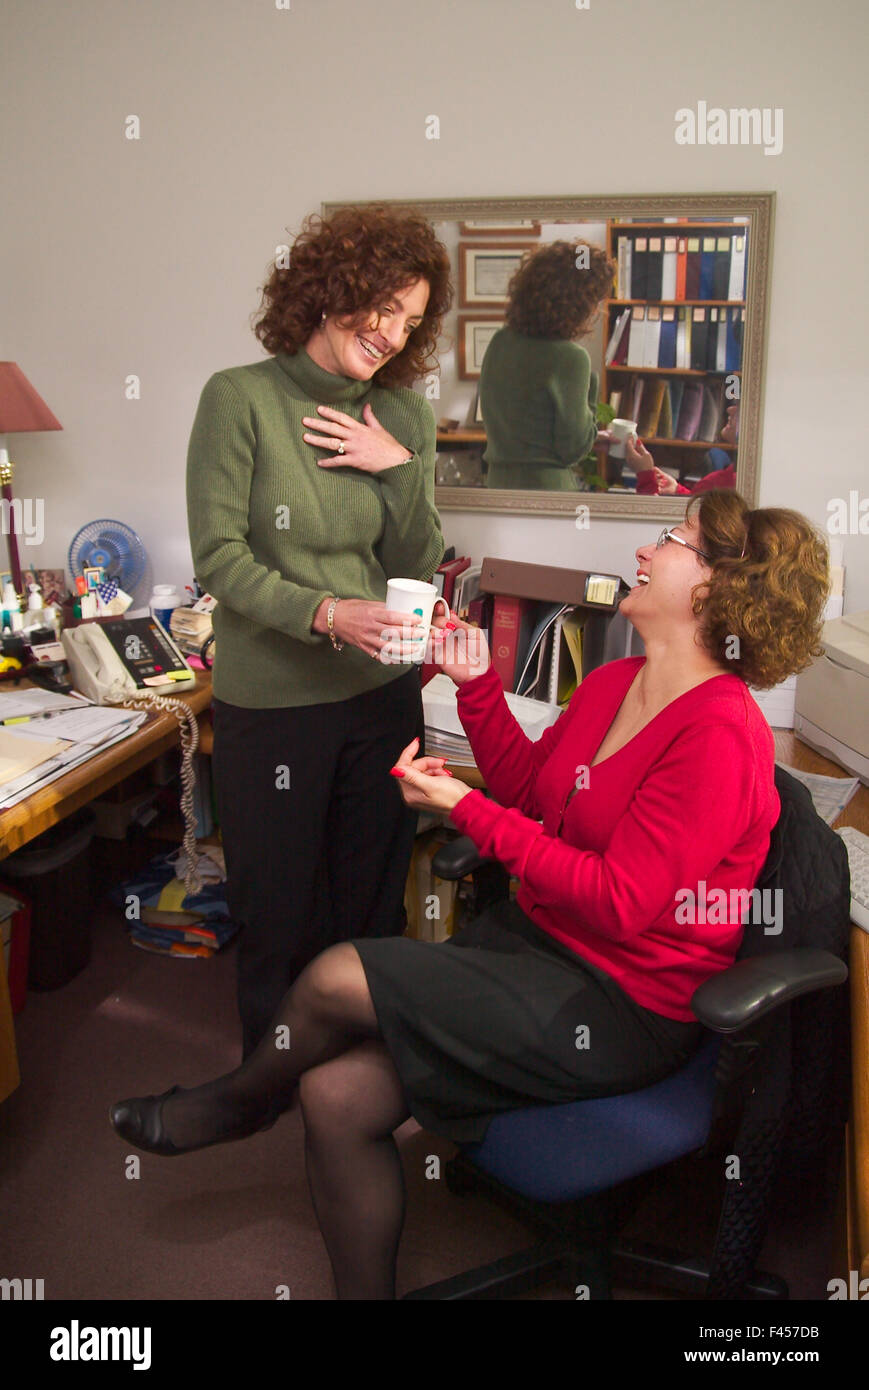 Two community college faculty members share a laugh in a Mission Viejo, CA, campus office. - Stock Image